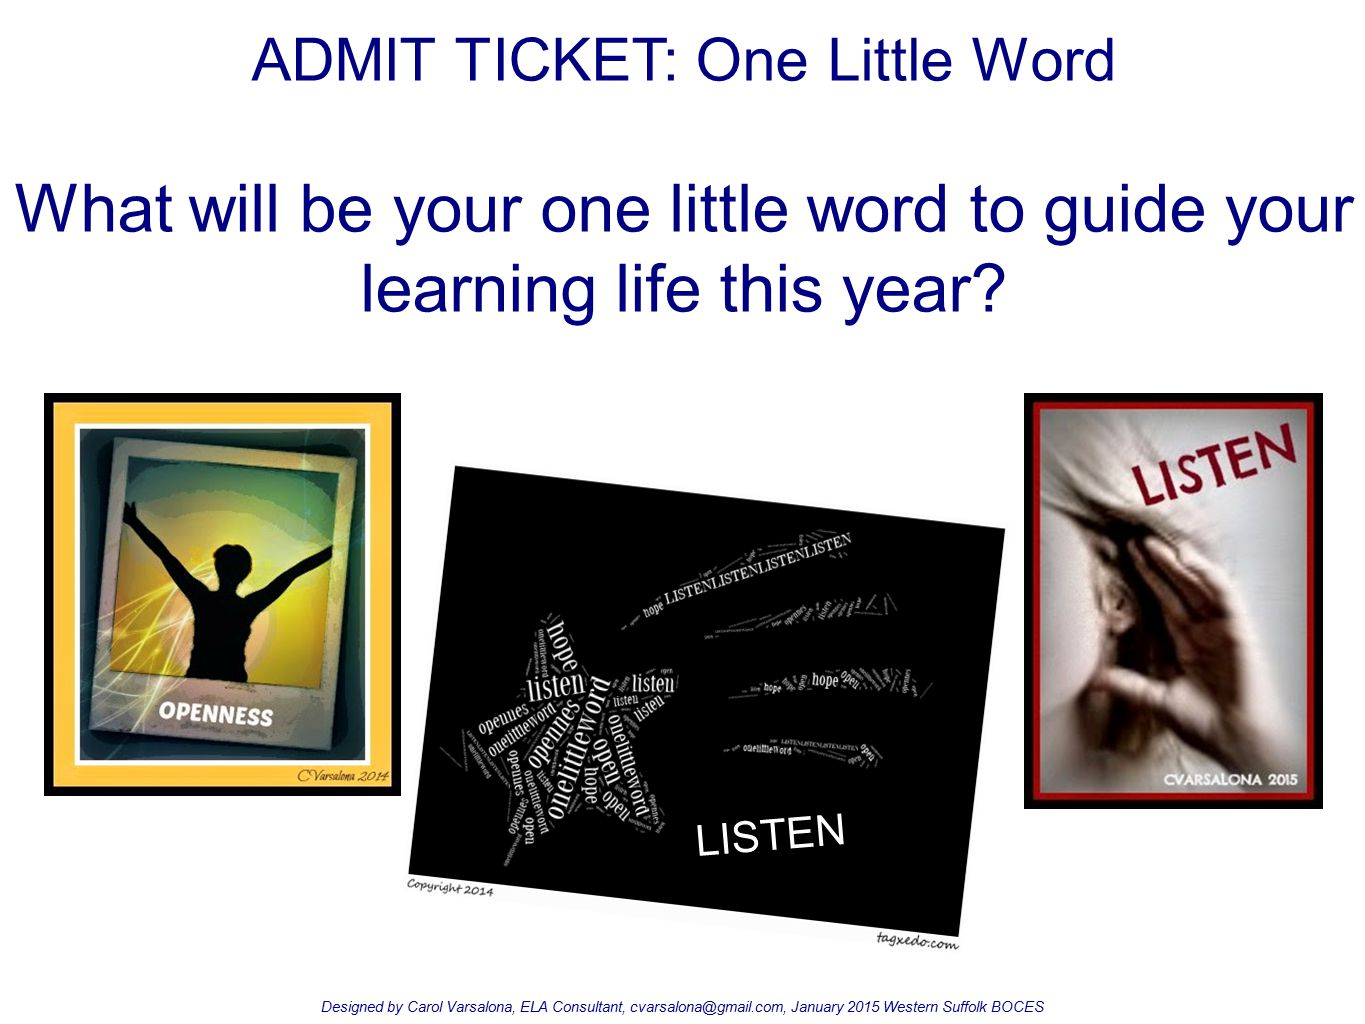 ADMIT TICKET: One Little Word What will be your one little word to guide your learning life this year.